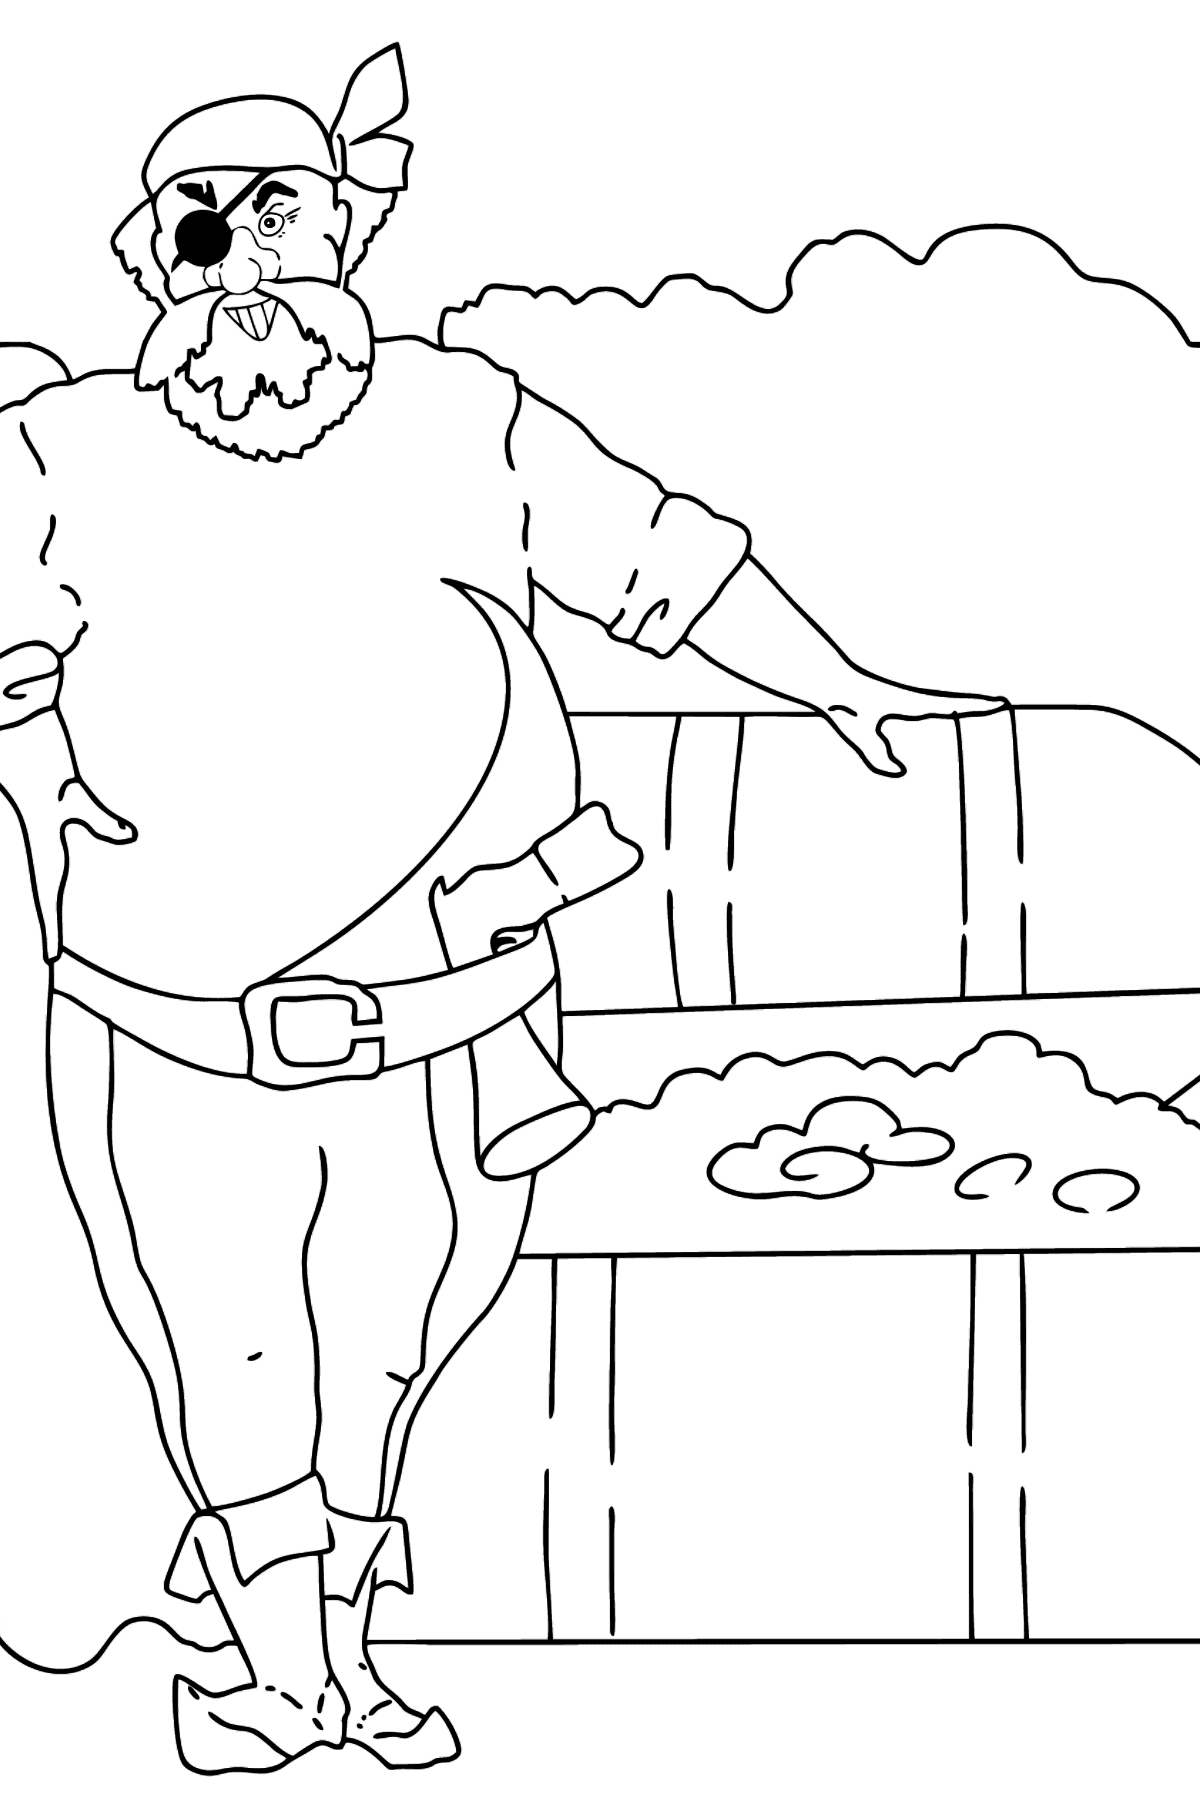 Coloring Page - A Pirate with a Trunk - Coloring Pages for Kids